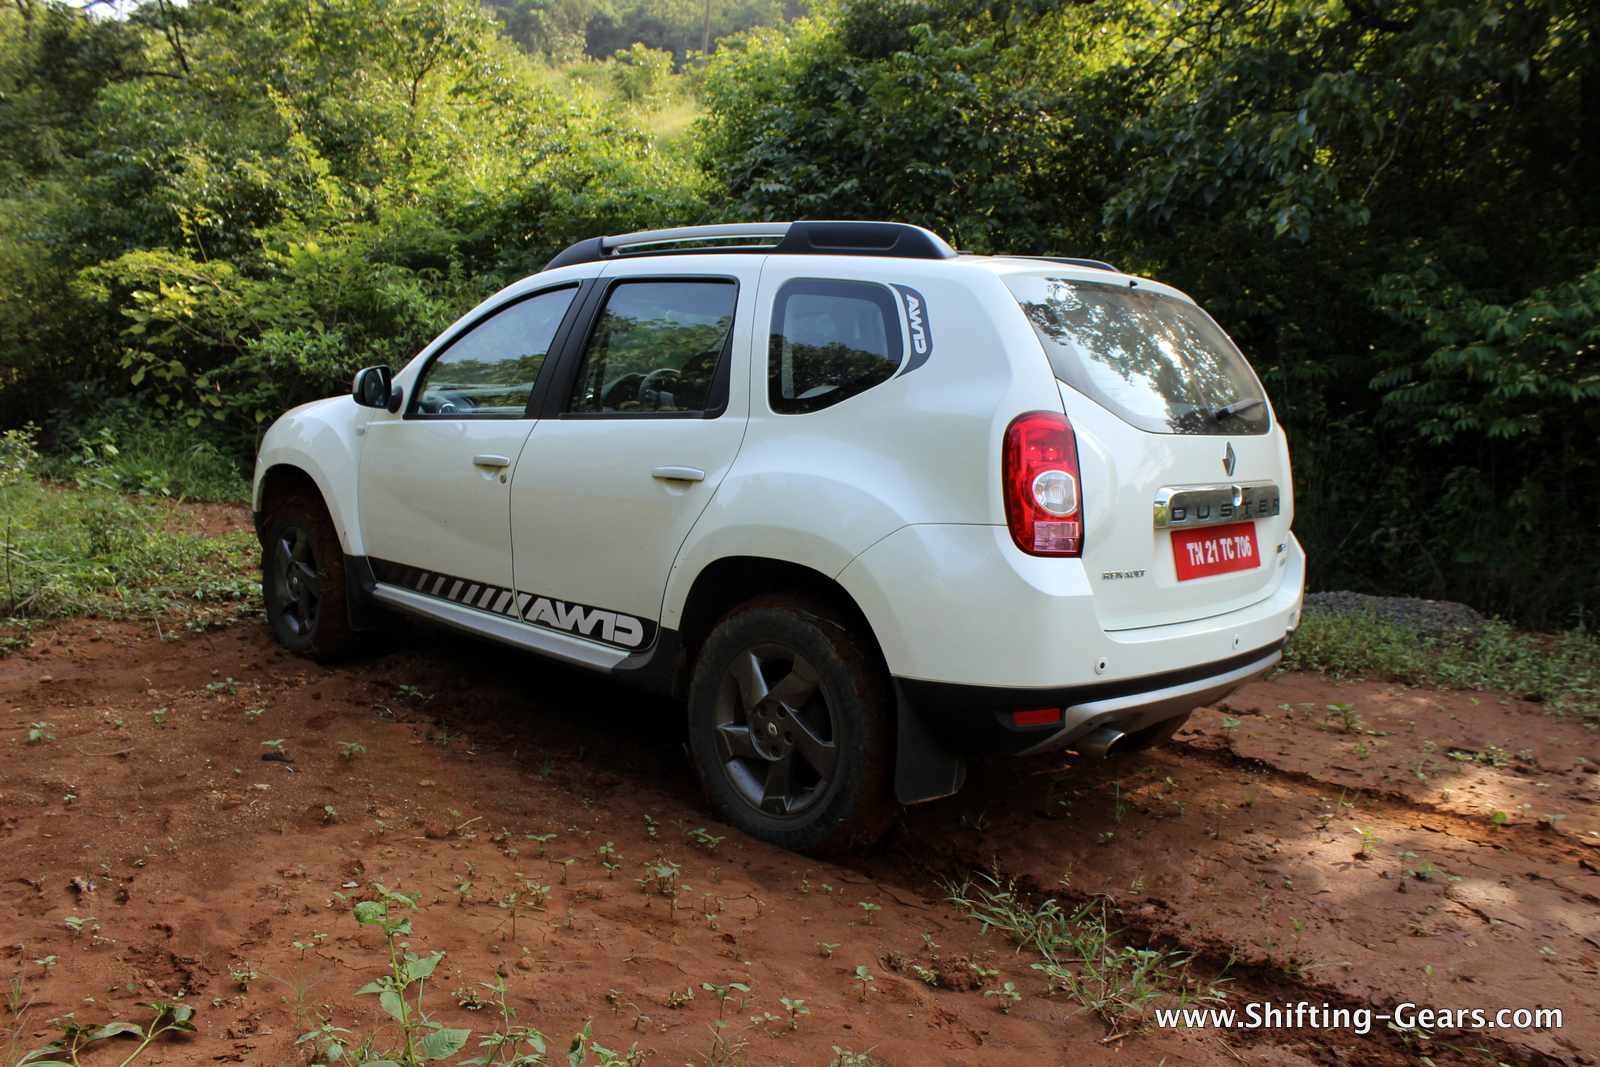 Compared to other full-size SUVs, the Duster squats significantly